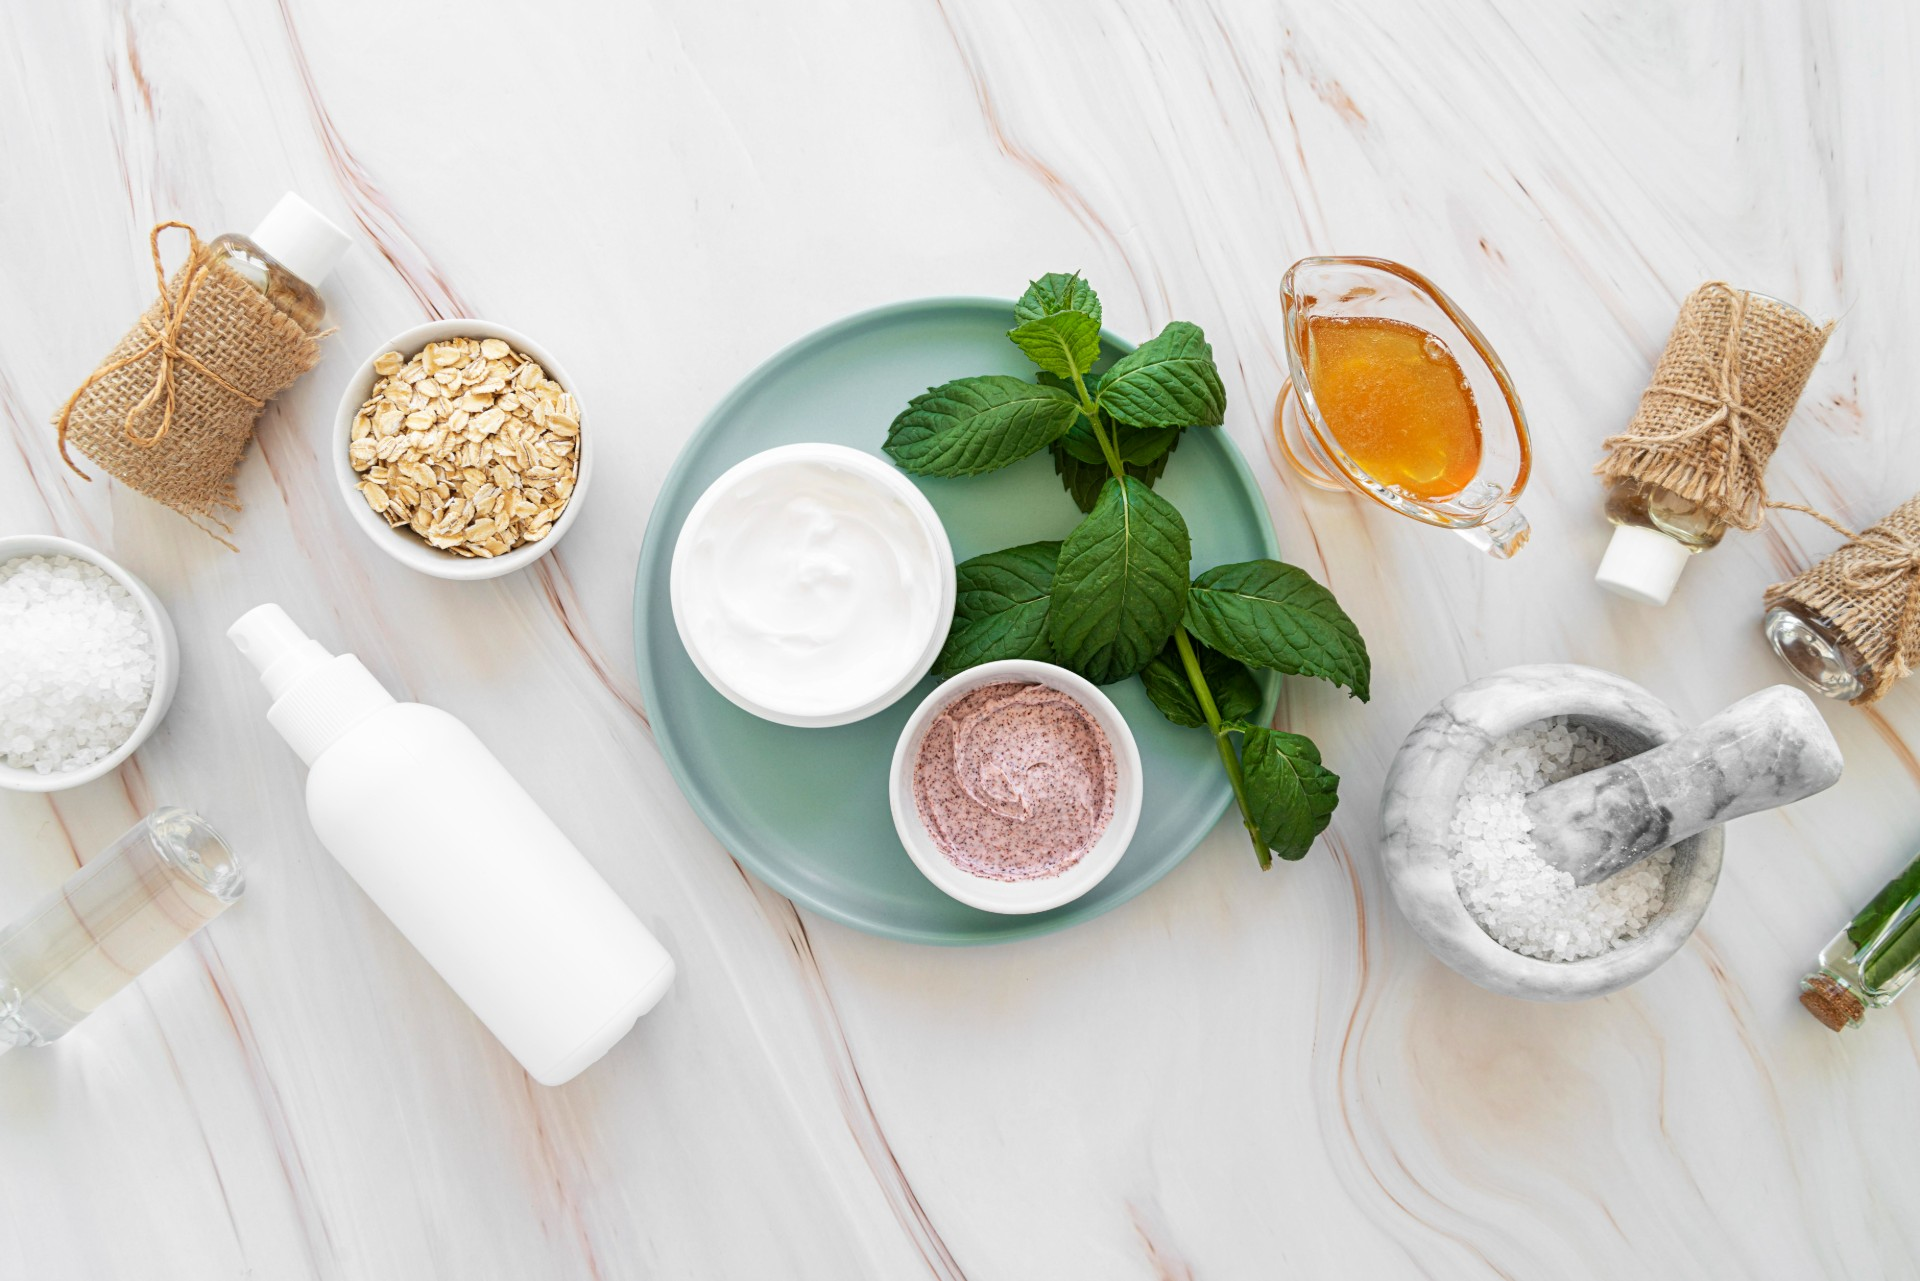 Health and Beauty Skin Care